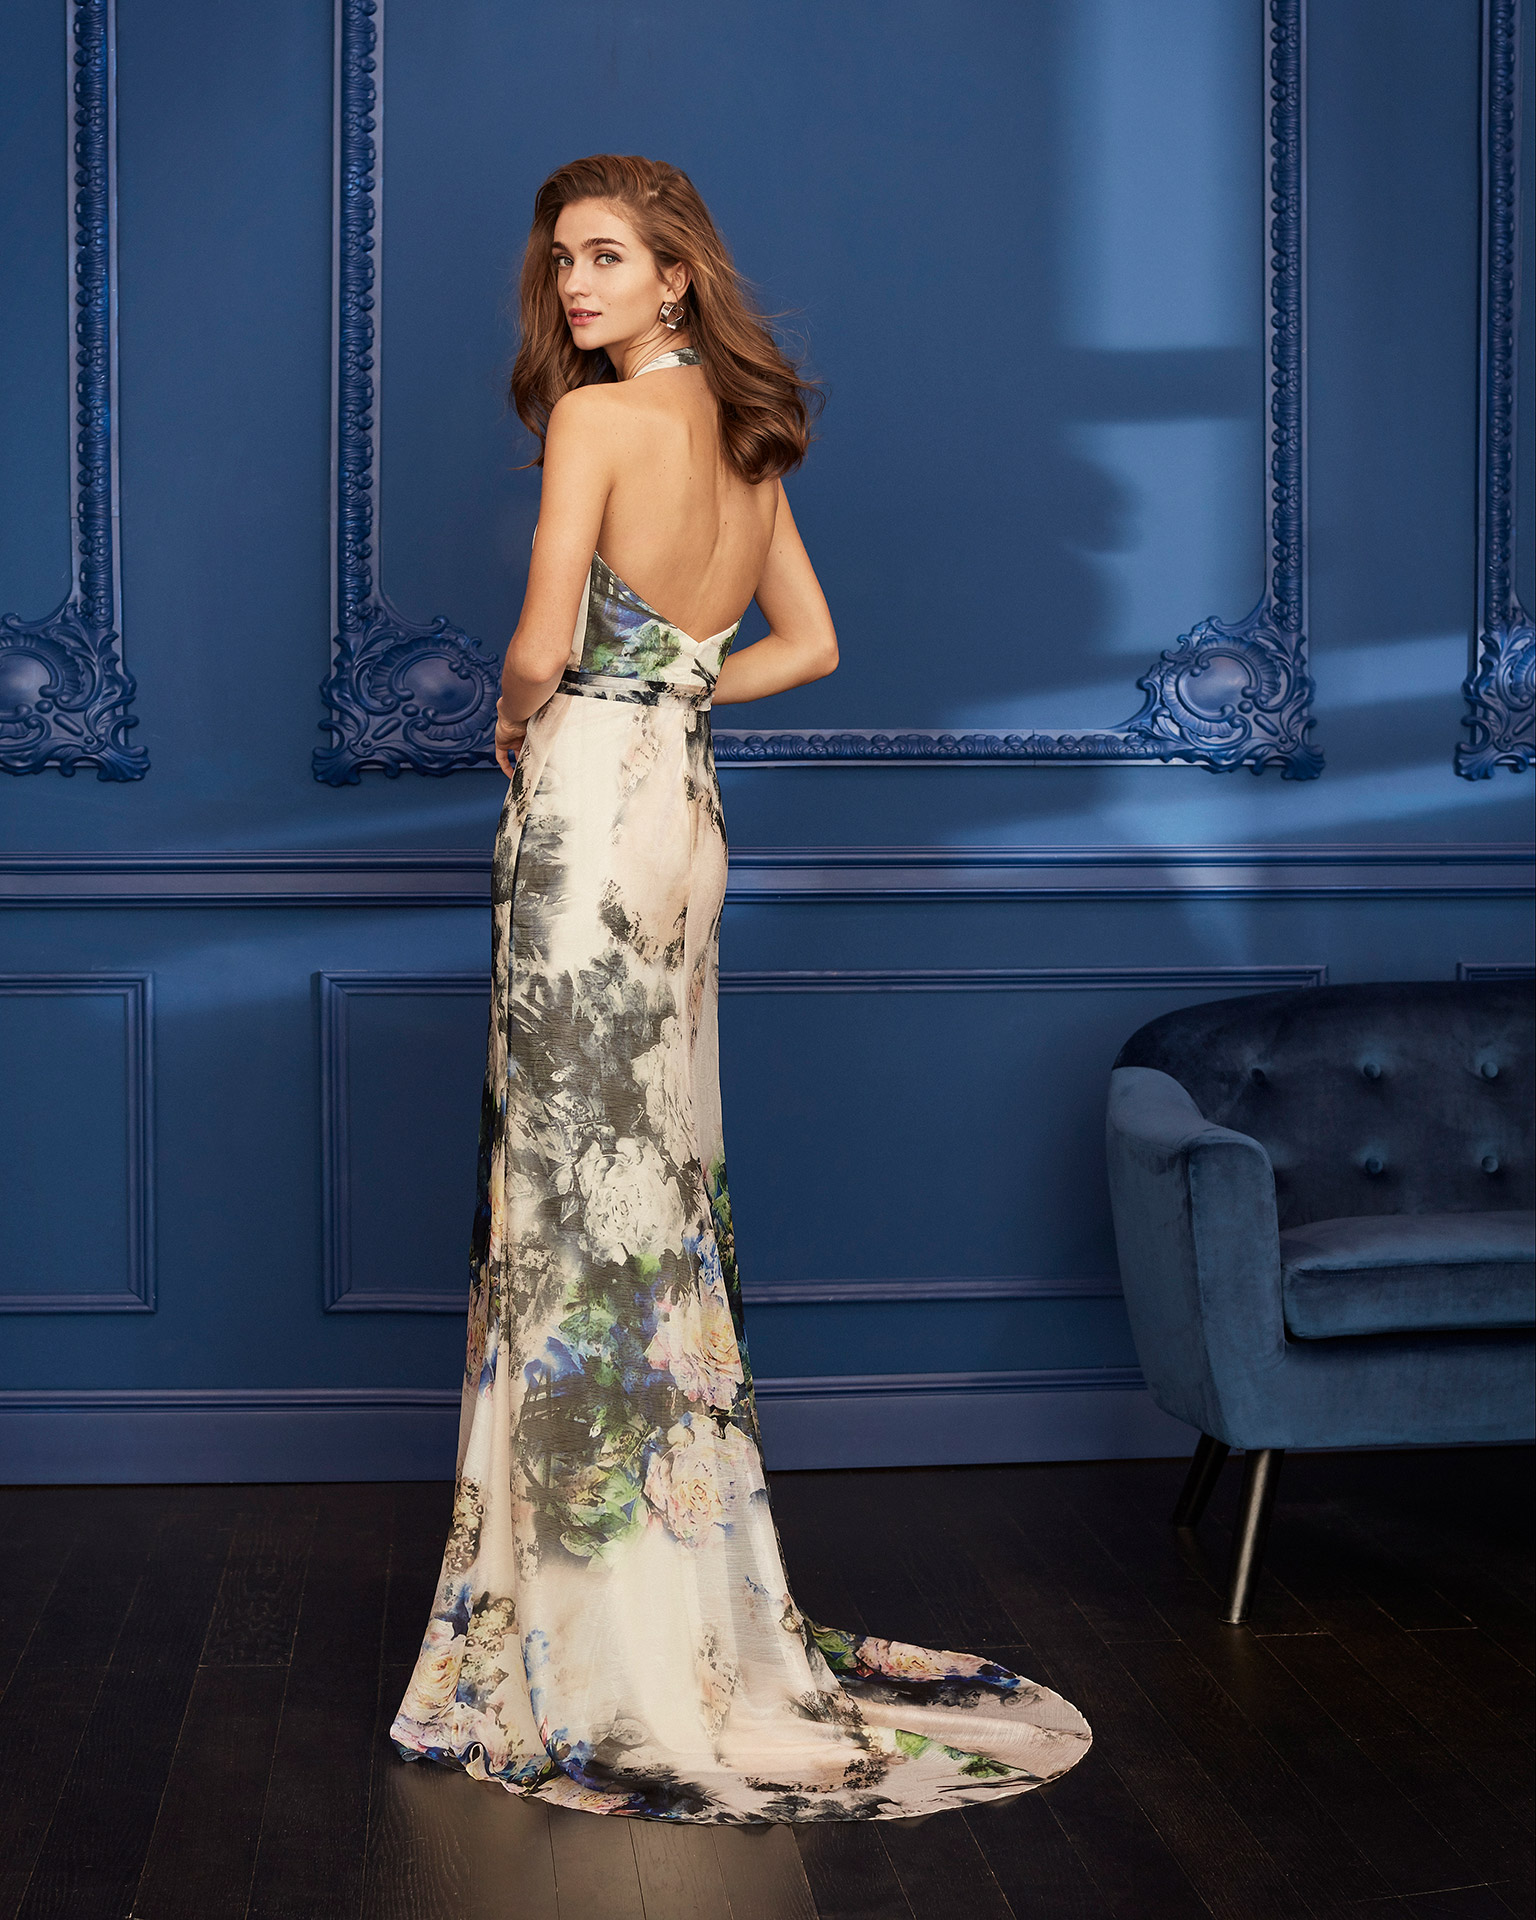 Organza cocktail dress. Halter-style V-neckline with bow at the waist. With shawl. 2020 MARFIL BARCELONA Collection.